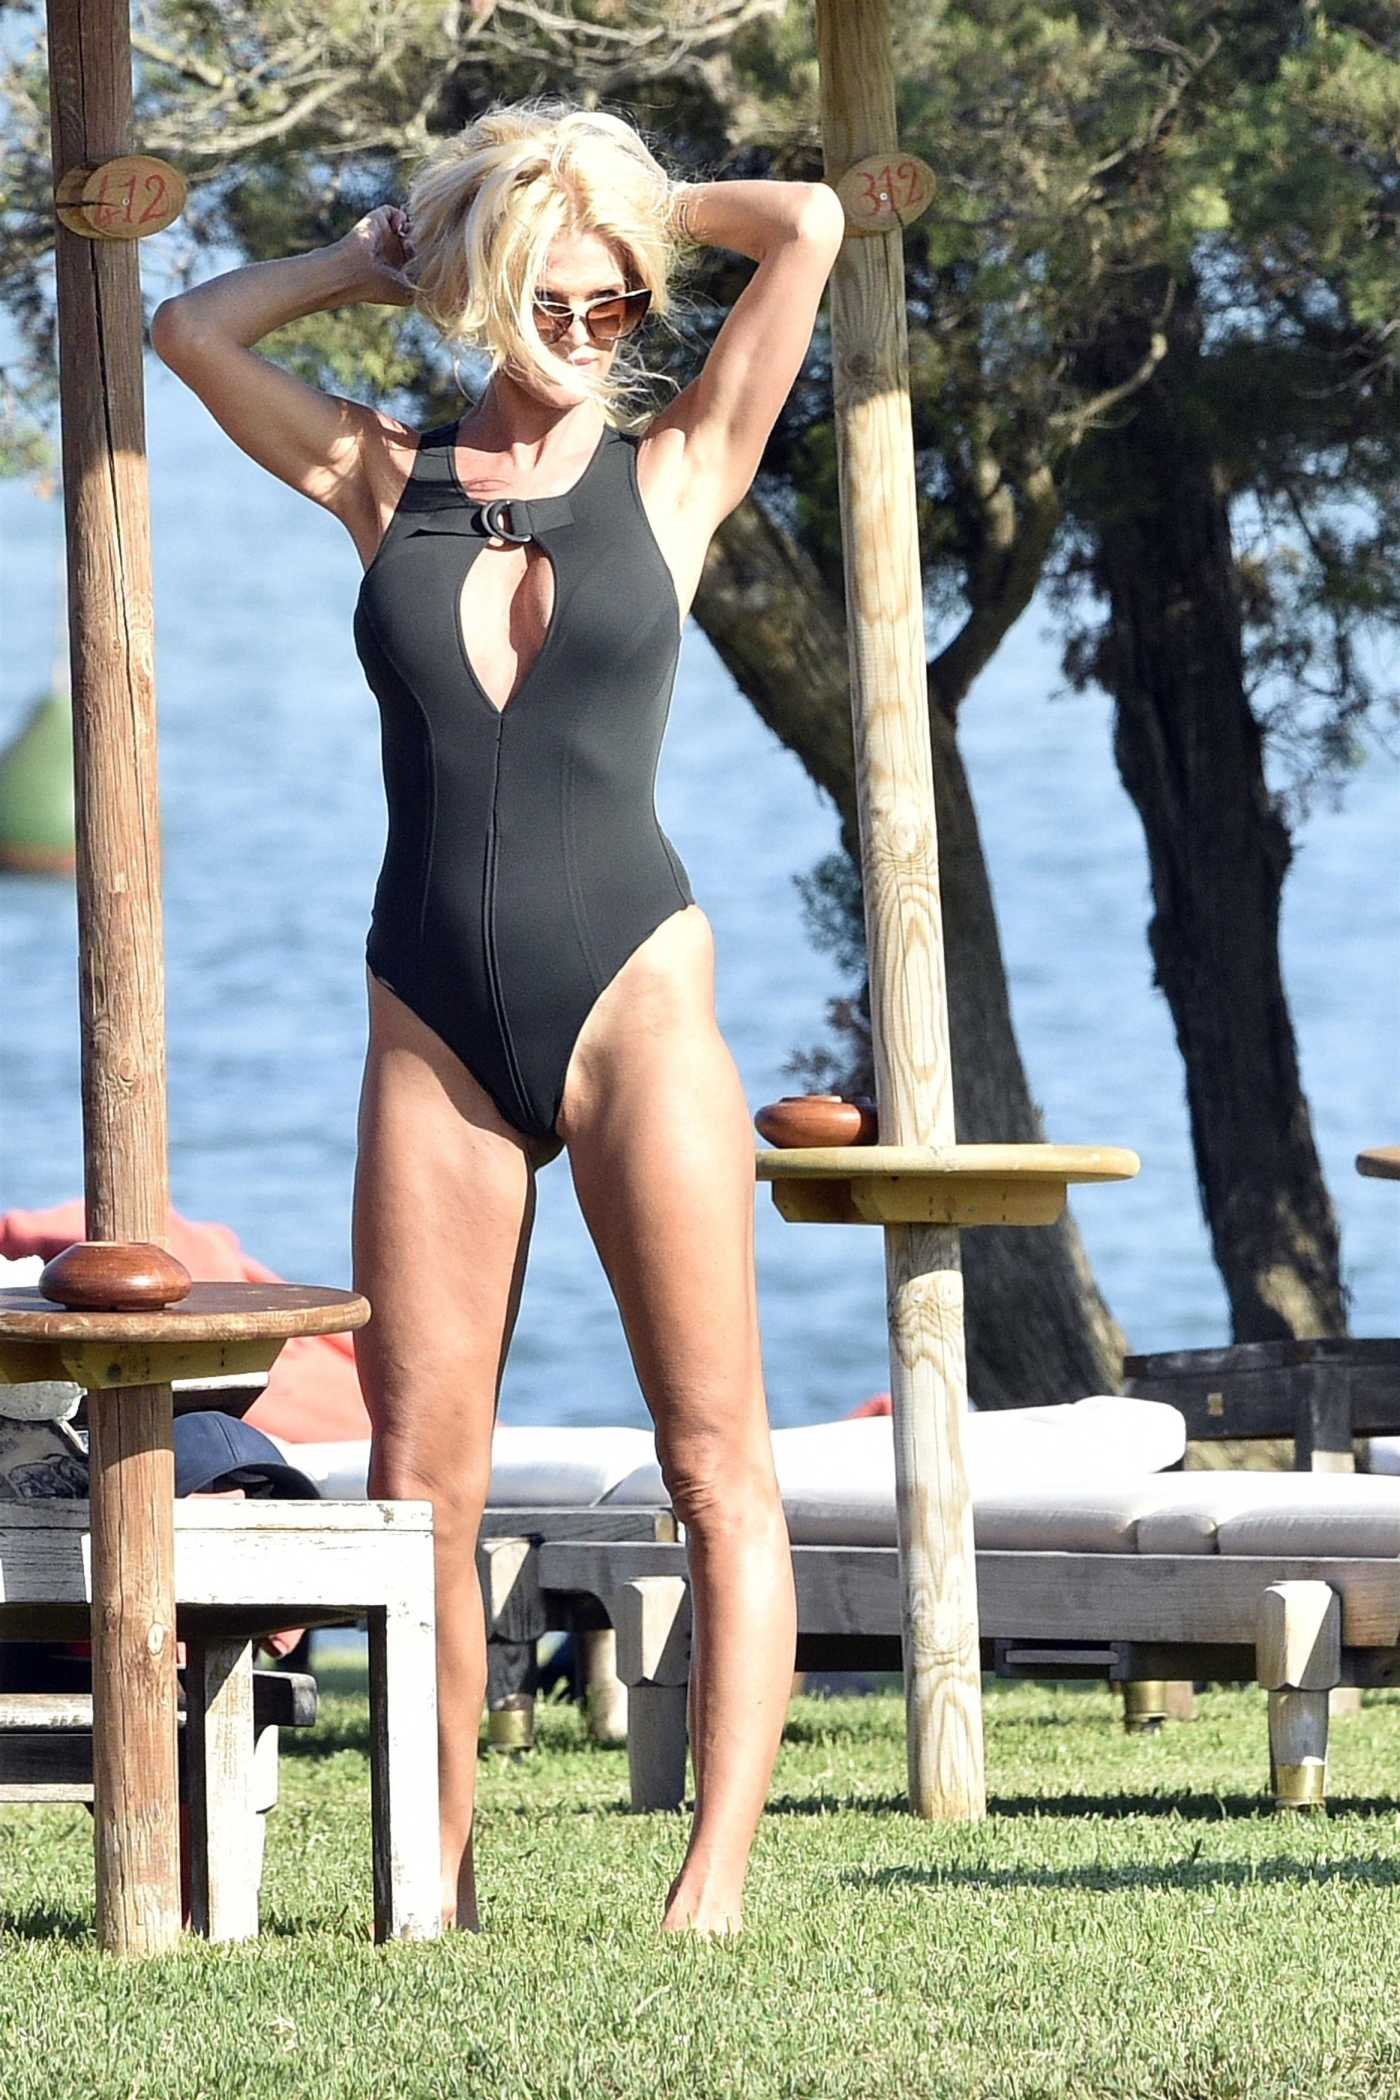 Victoria Silvstedt in a Black Swimsuit by the Pool at the Luxury Hotel Cala di Volpe in Porto Cervo 08/19/2020